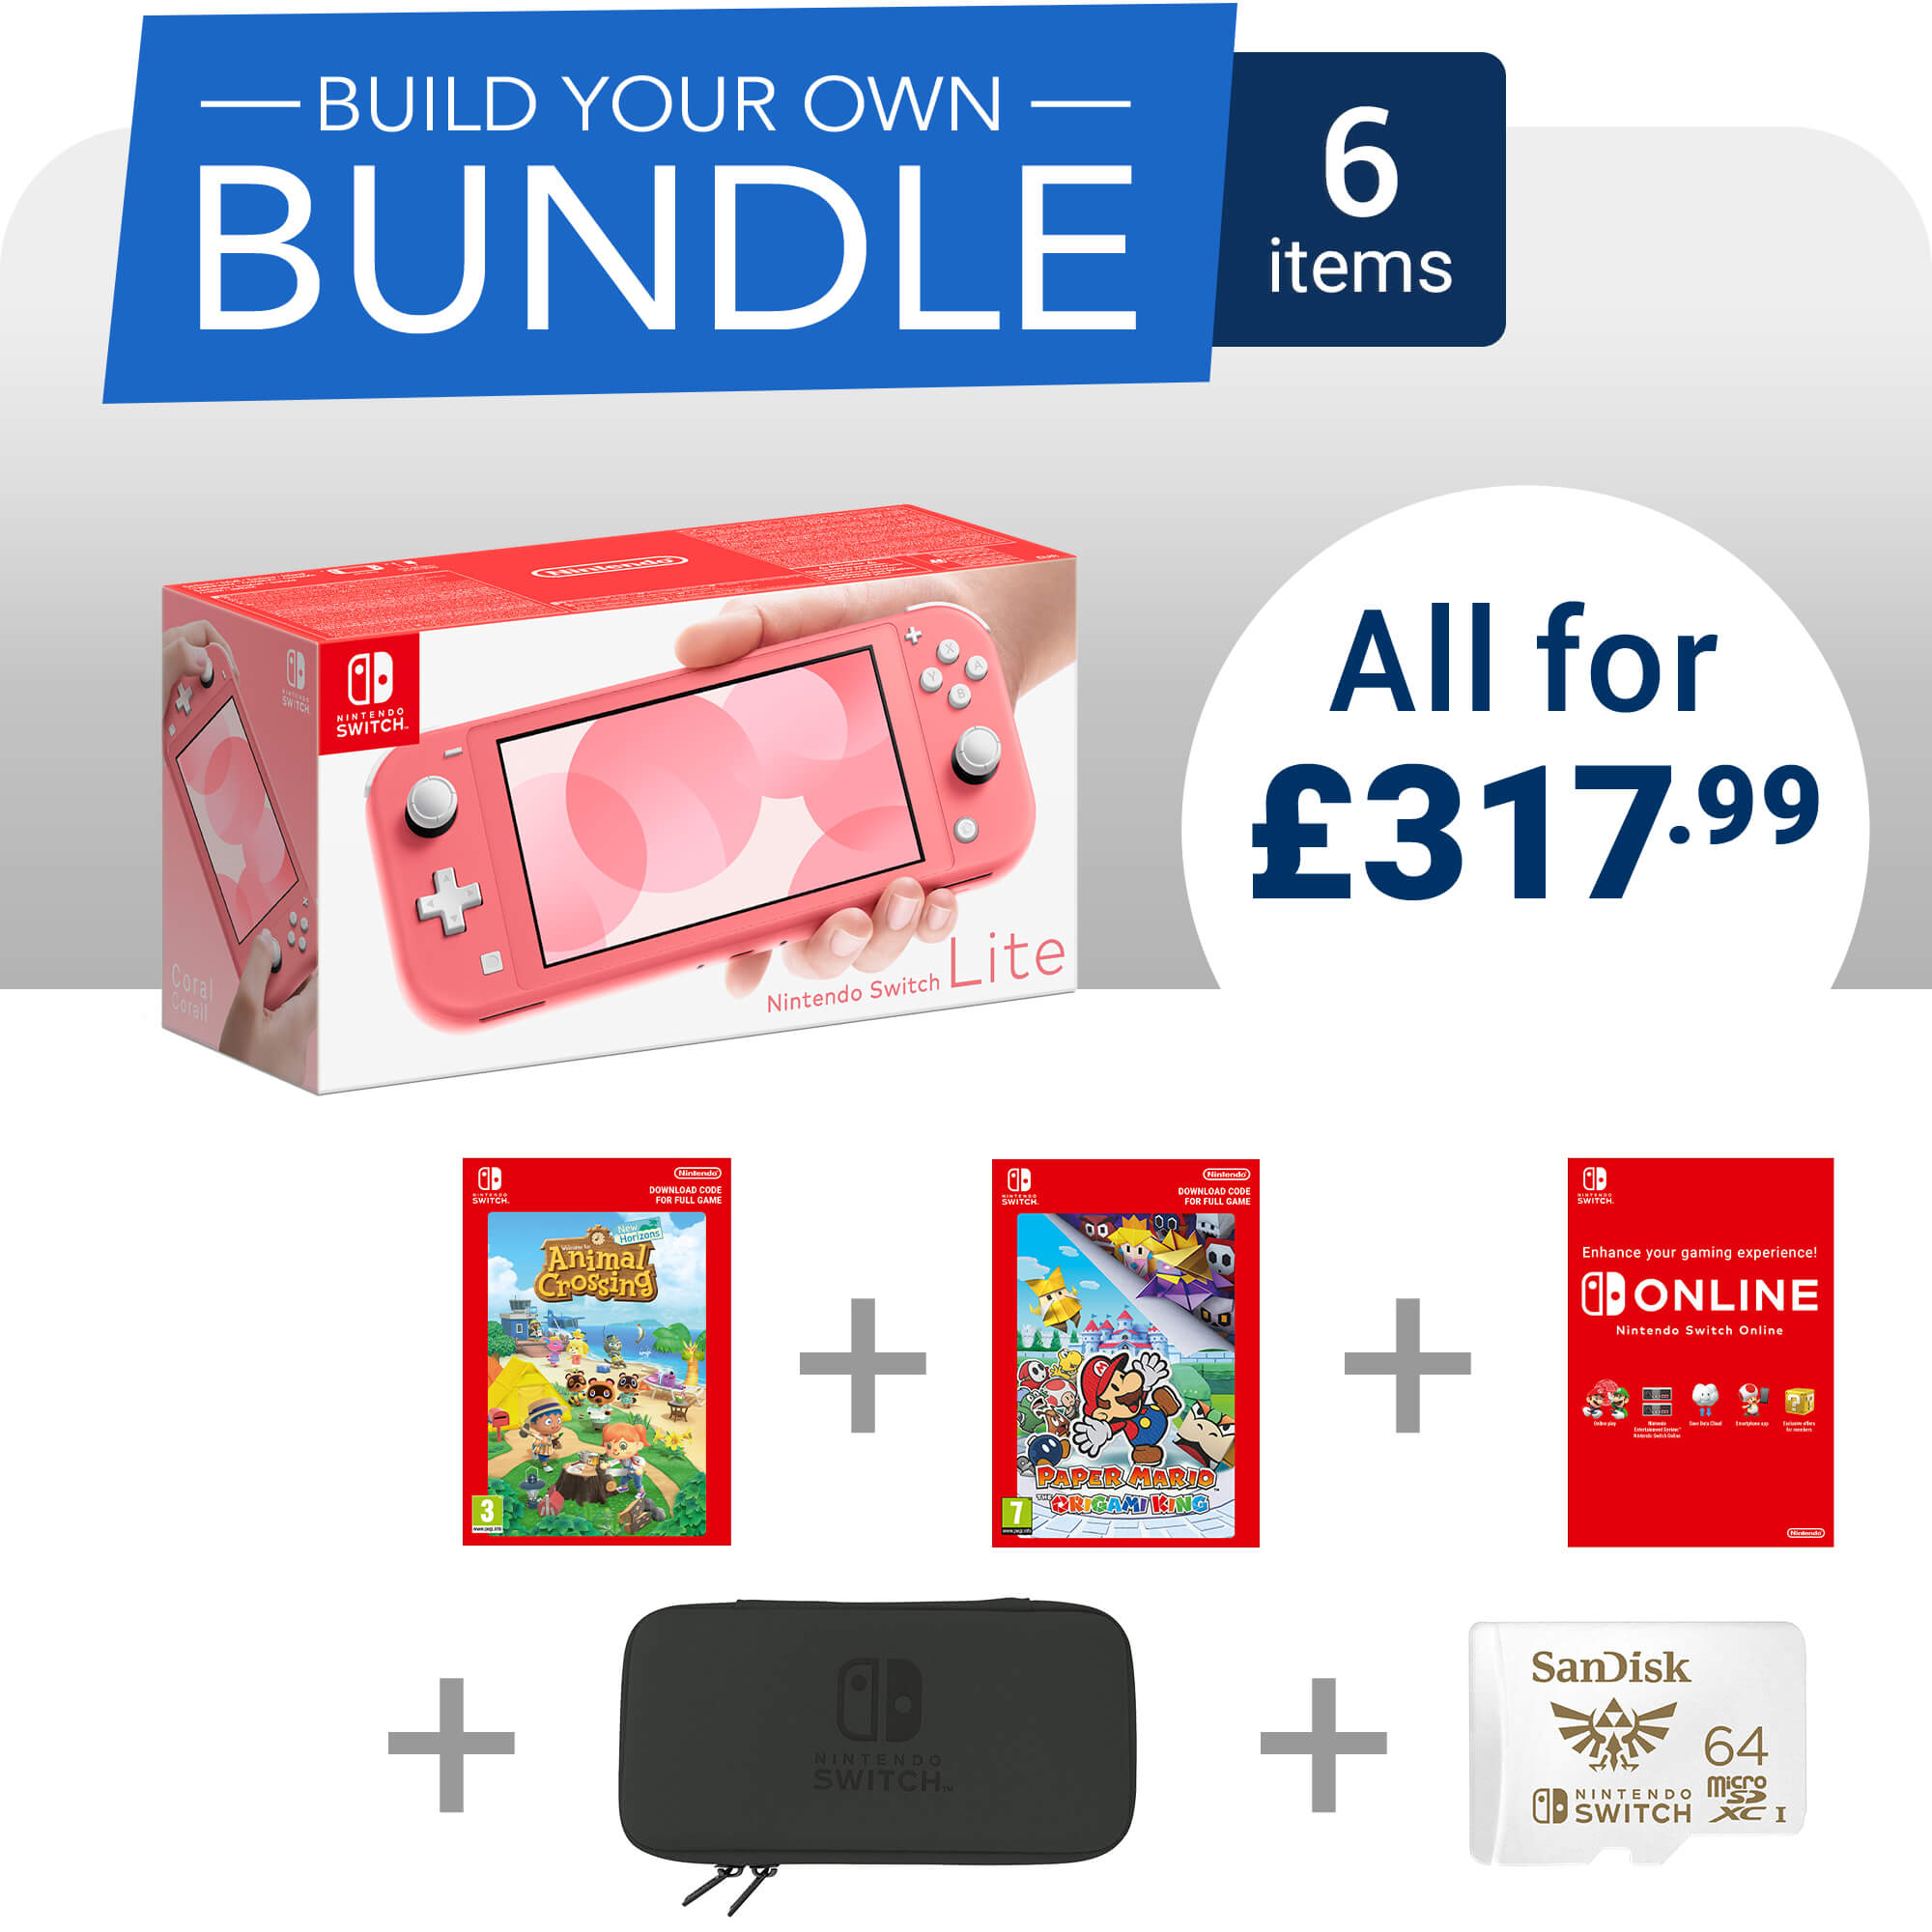 Build Your Own Nintendo Switch Lite Bundle - 6 items - £317.99